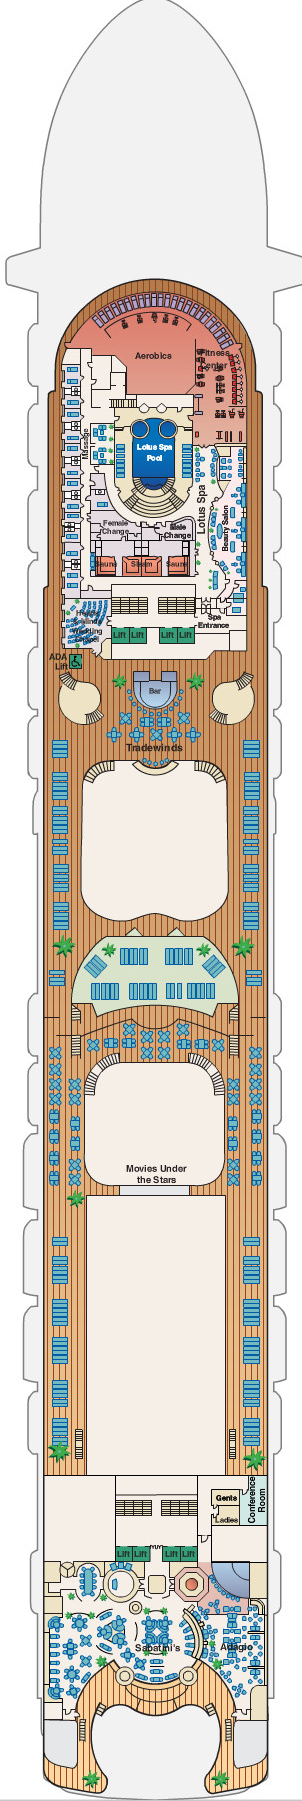 Emerald Princess Sun Deck 16 layout